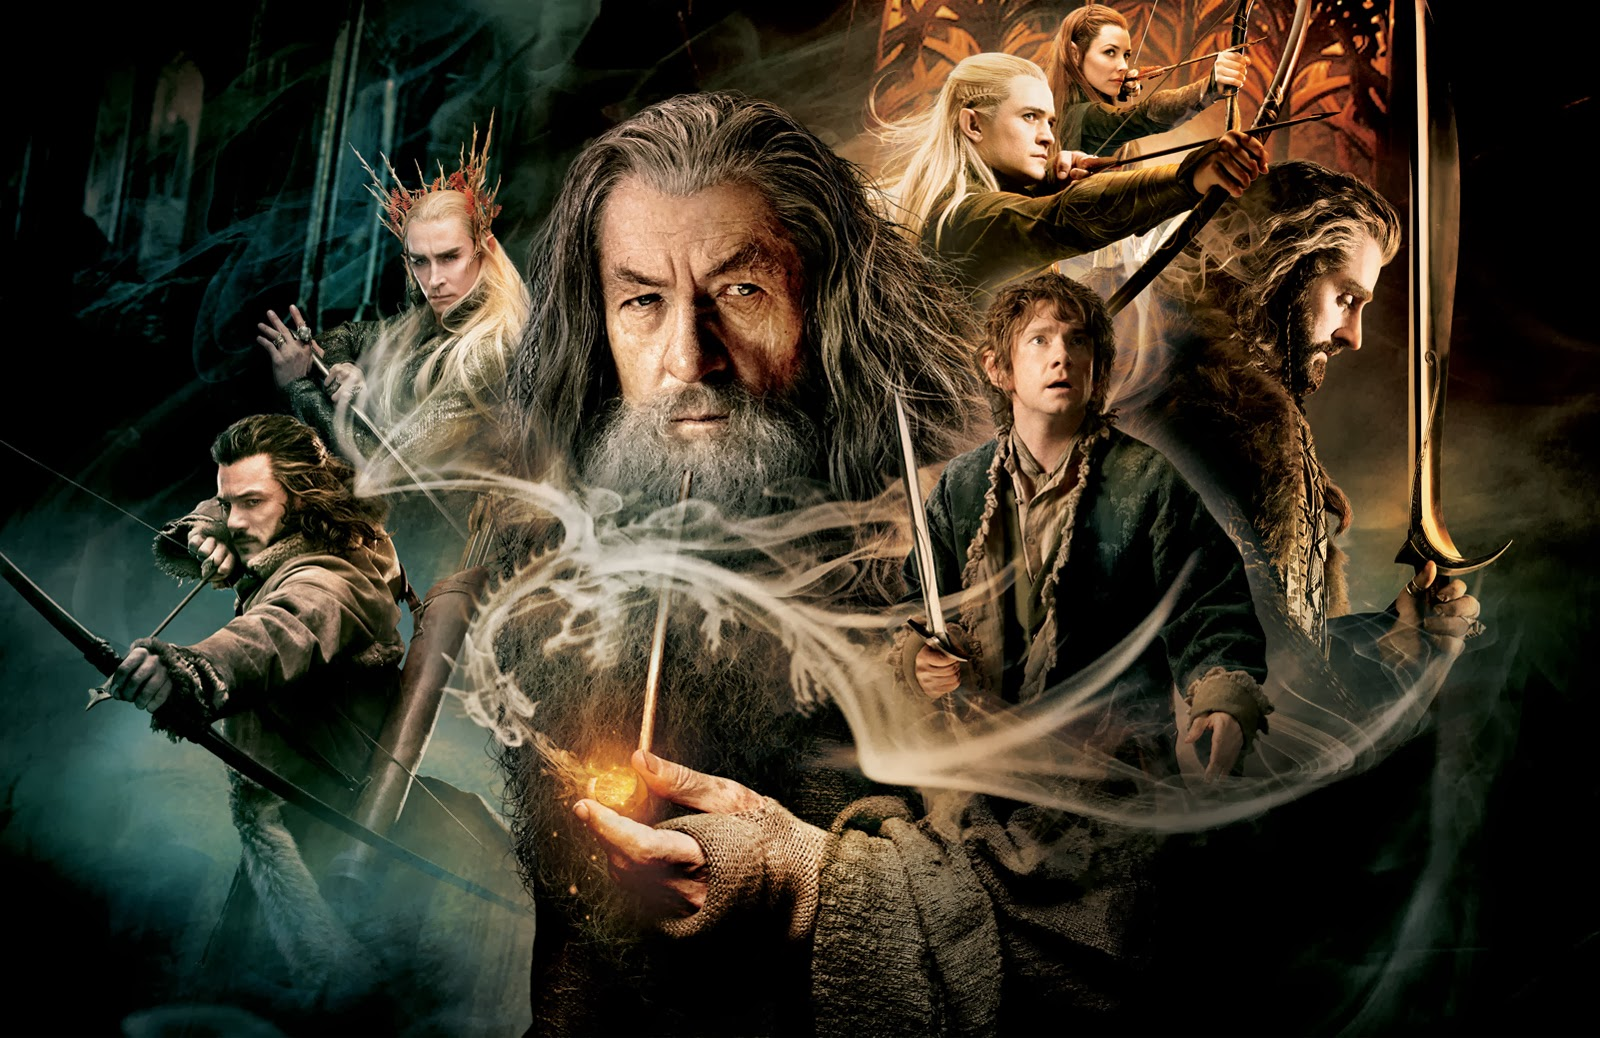 the hobbit movie review I finally got to see the hobbit (part 1) a few days ago it was fun to watch, and i hardly noticed the nearly three hours go by some parts of it were great reflections of tolkien's middle-earth and of his characters and story.